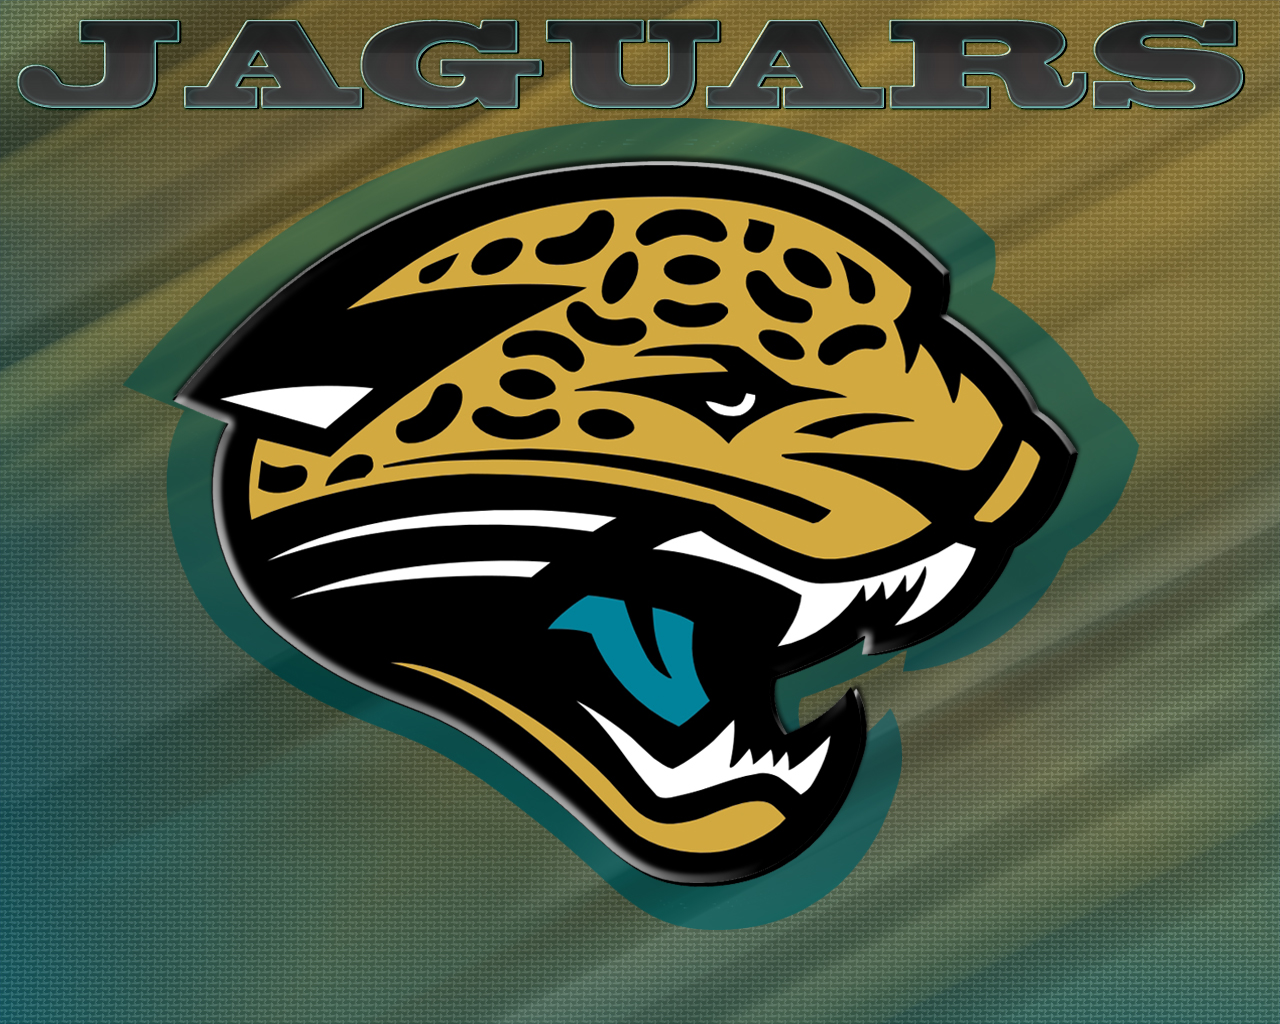 jacksonville jaguars new logo 2017 - photo #15